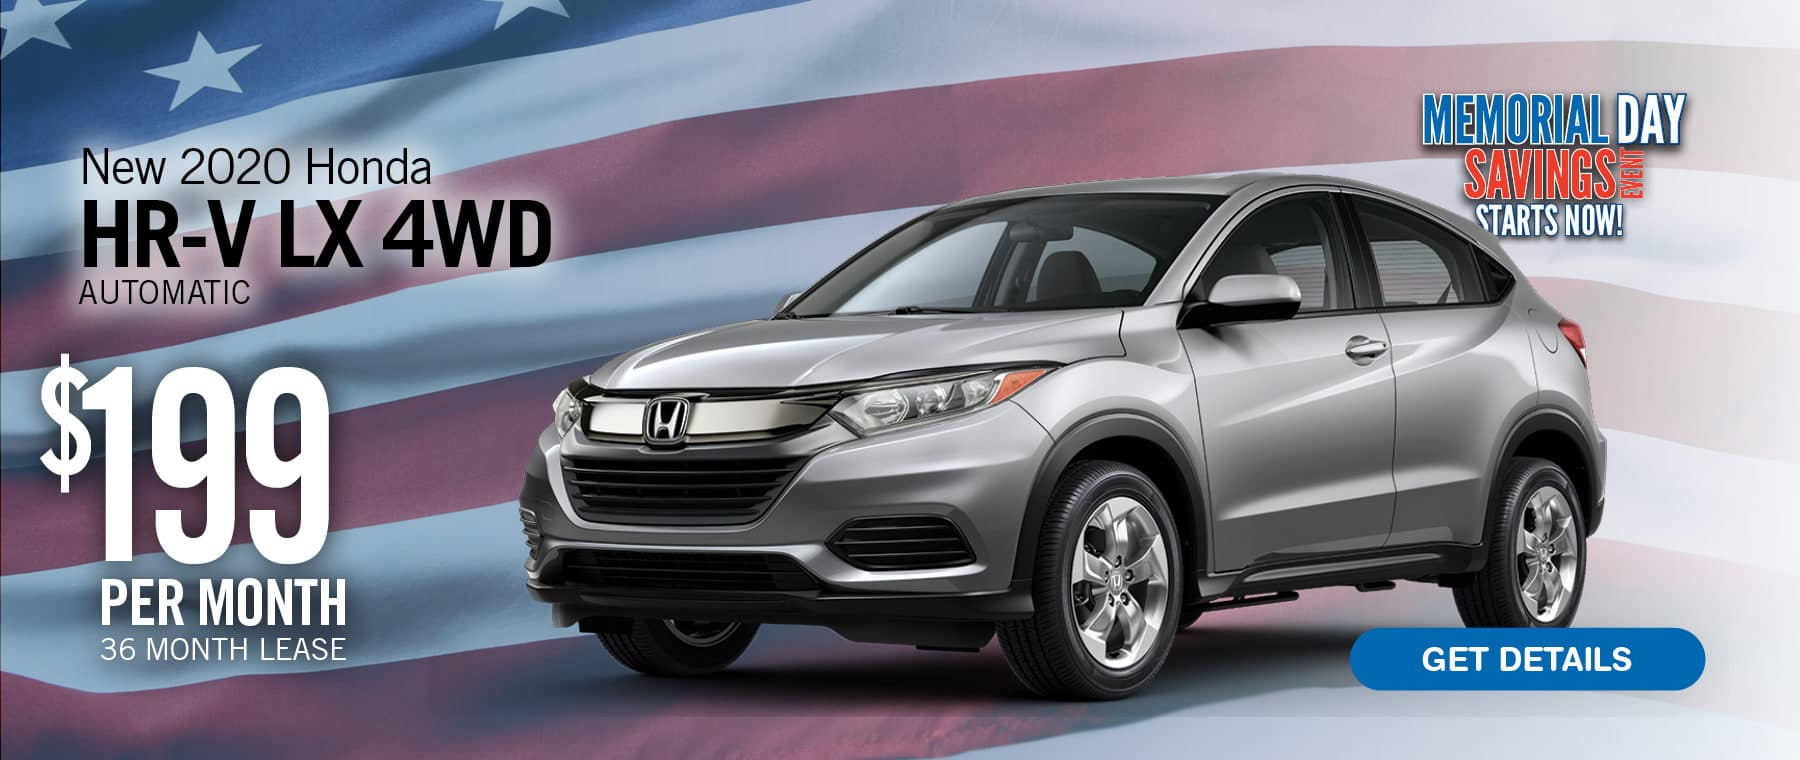 Lease a HR-V for $199